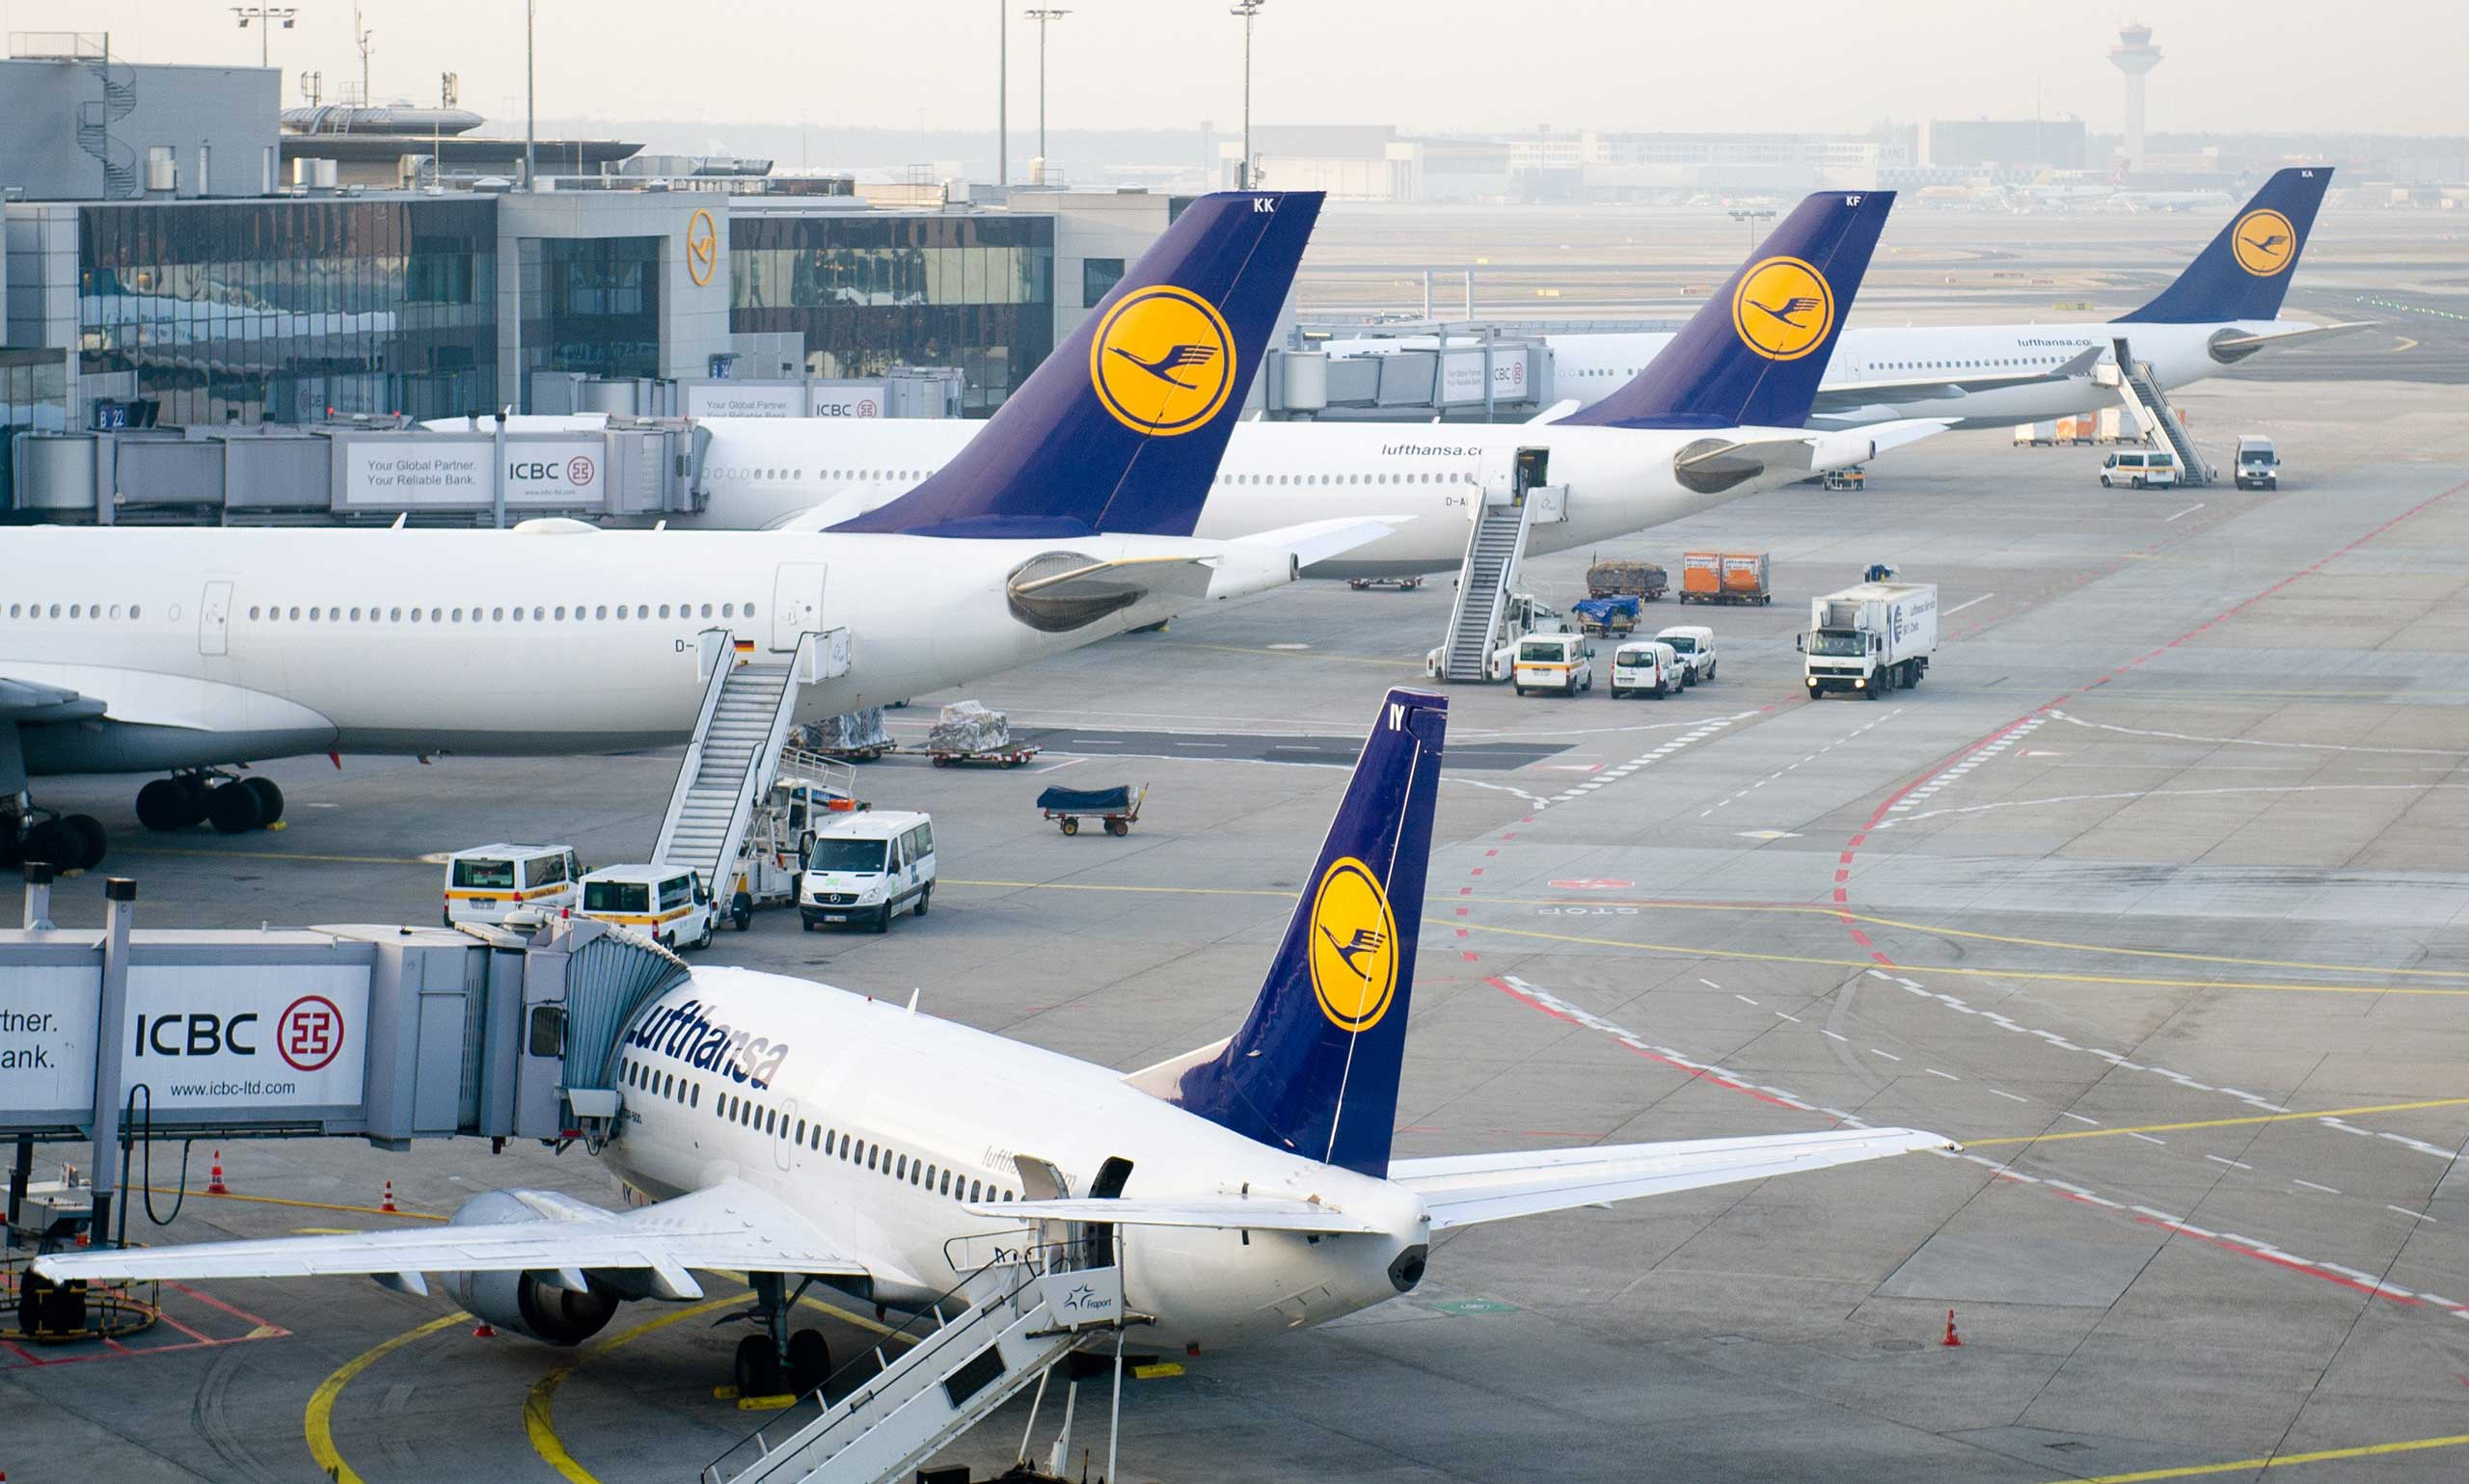 Short-haul and long-haul Lufthansa aircrafts stand at the airport in Frankfurt, Germany on March 18, 2015.